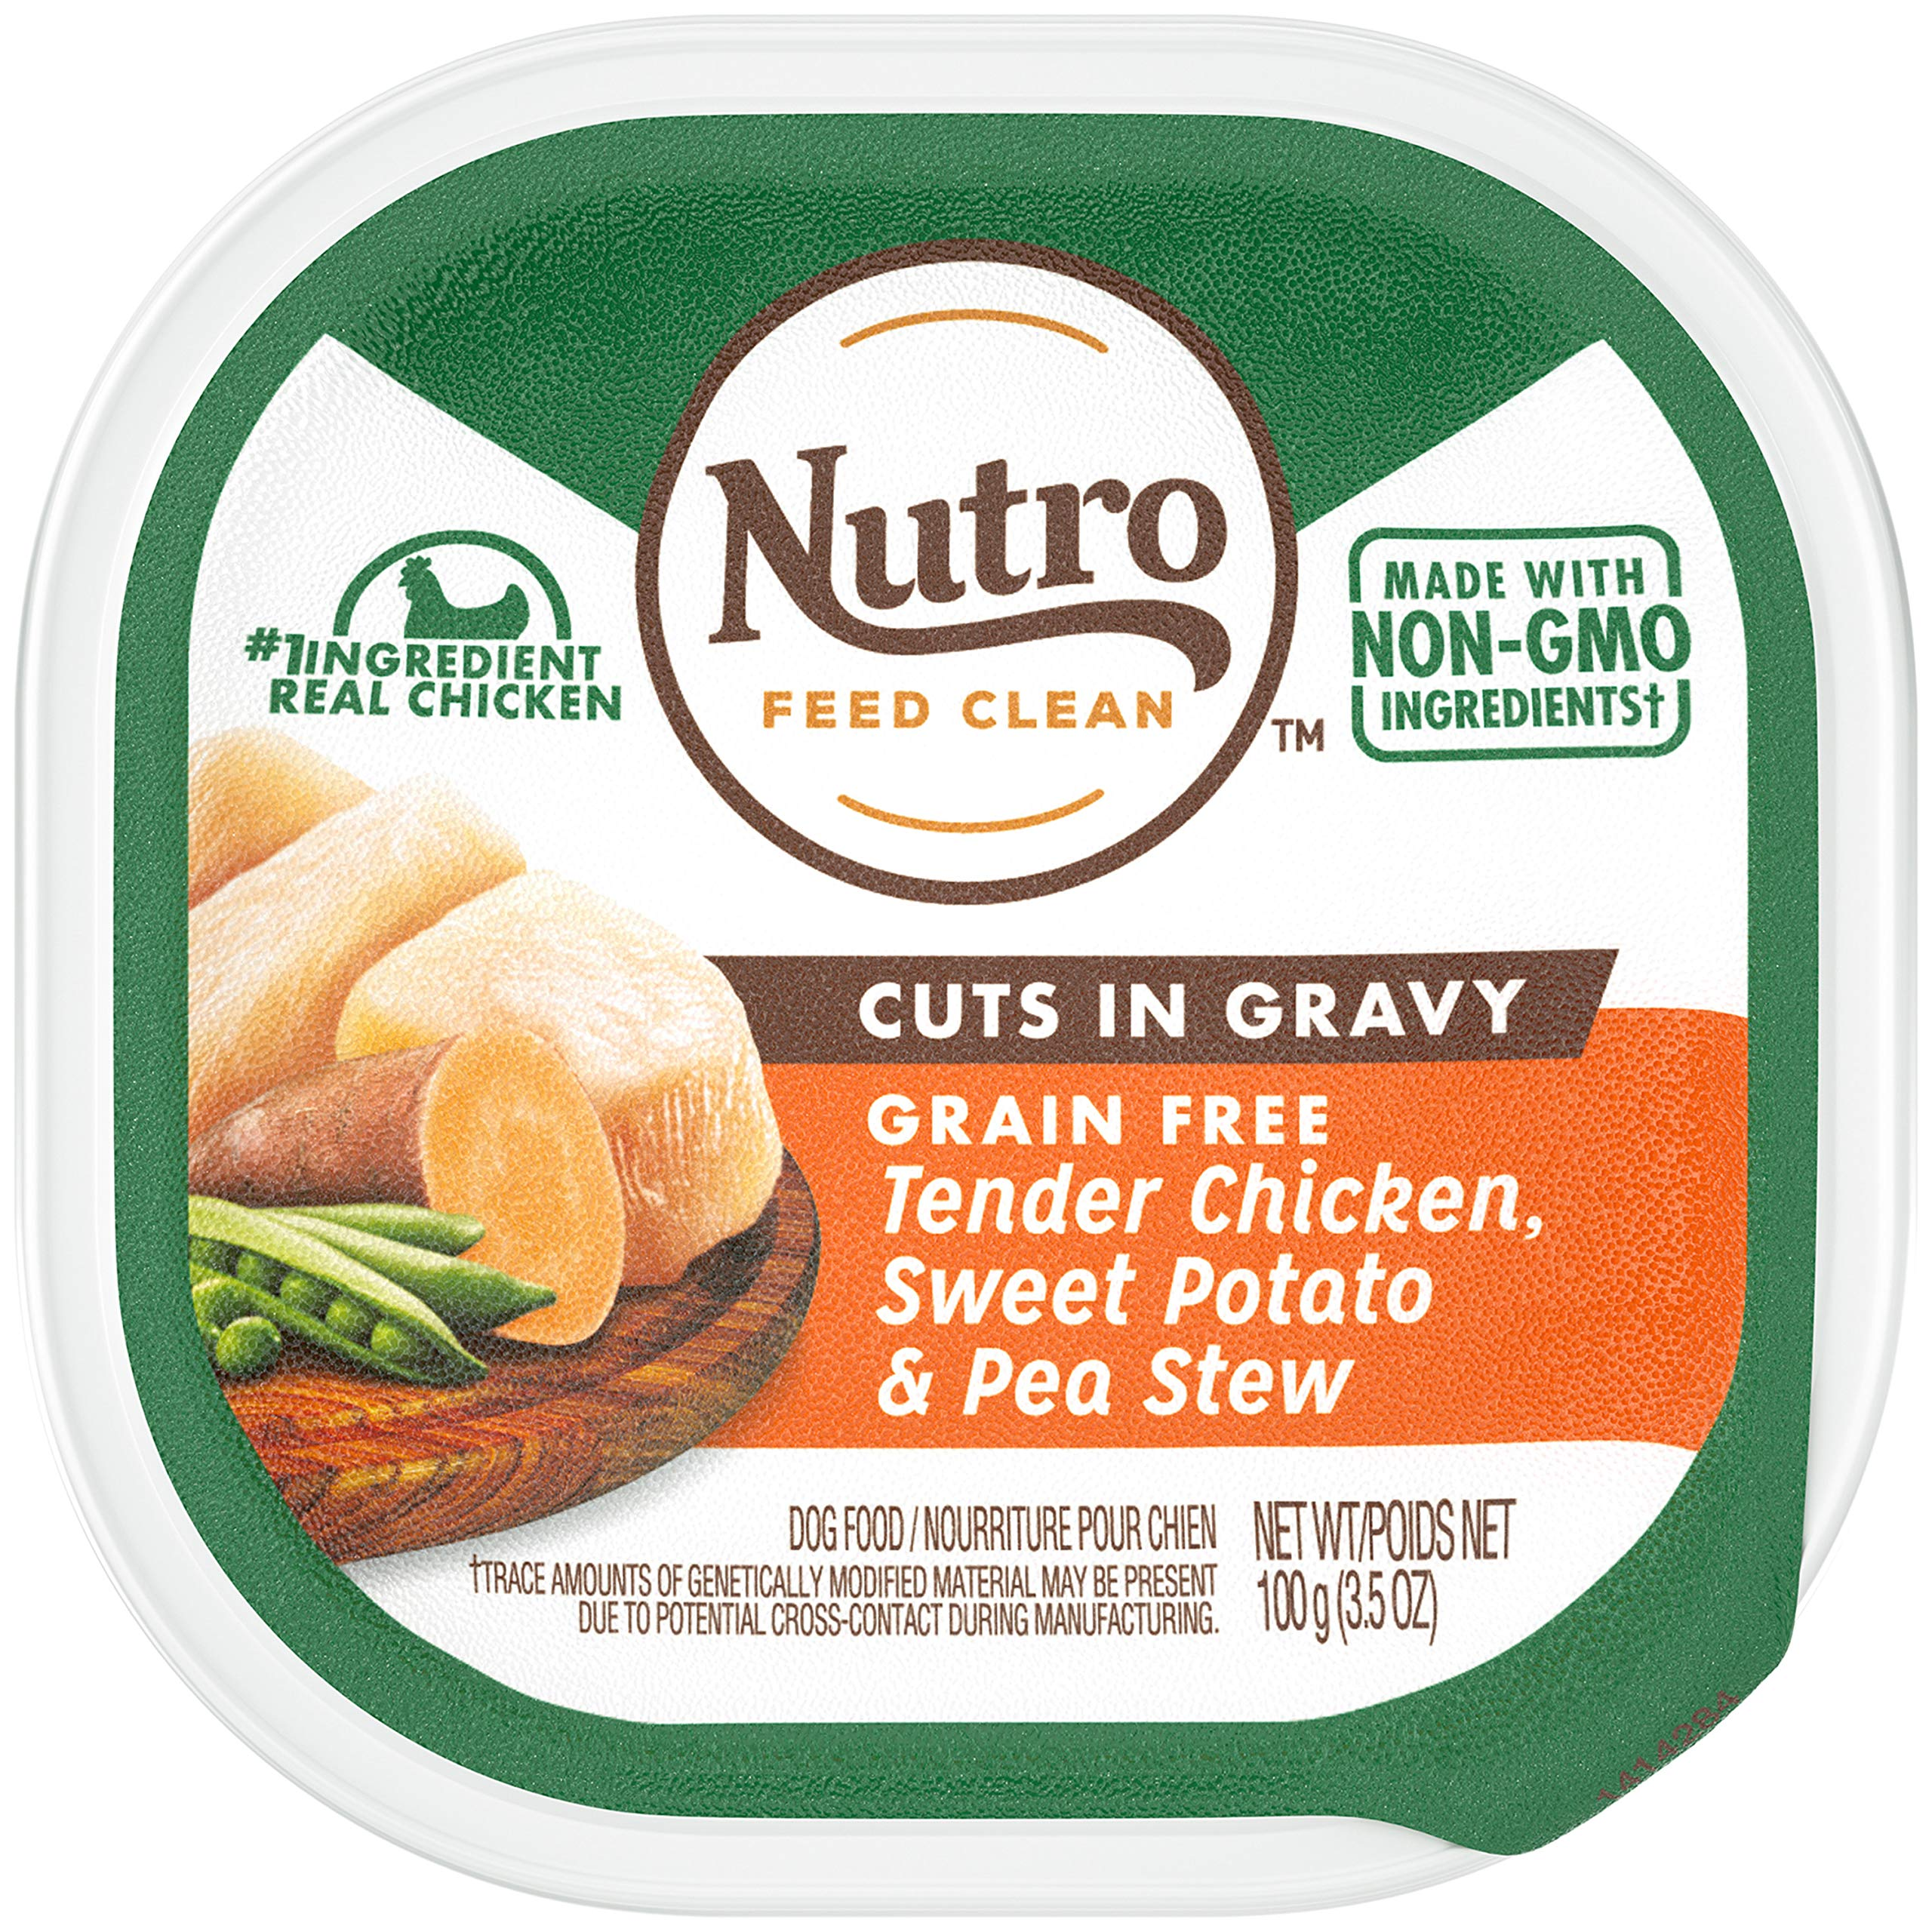 NUTRO Adult High Protein Natural Grain Free Wet Dog Food Cuts in Gravy Tender Chicken, Sweet Potato & Pea Stew, (24) 3.5 oz. Trays by Nutro